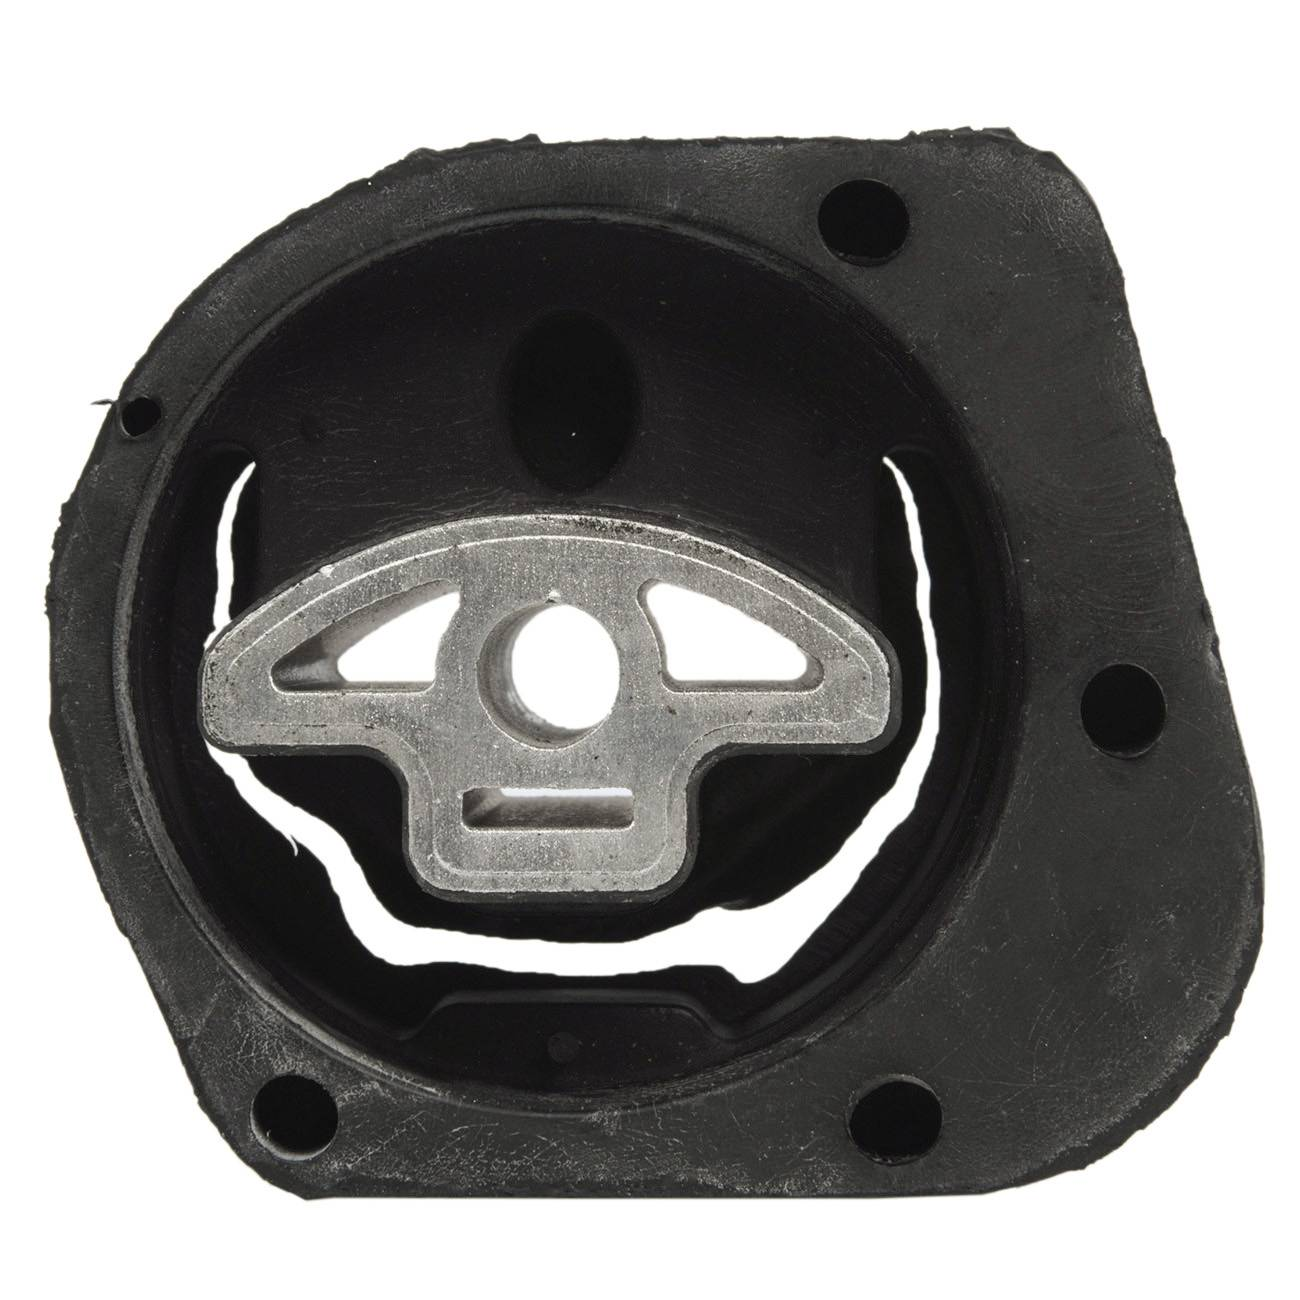 1pc Transmission Mounting For 2013-2015 BMW X1 & 2007-2010